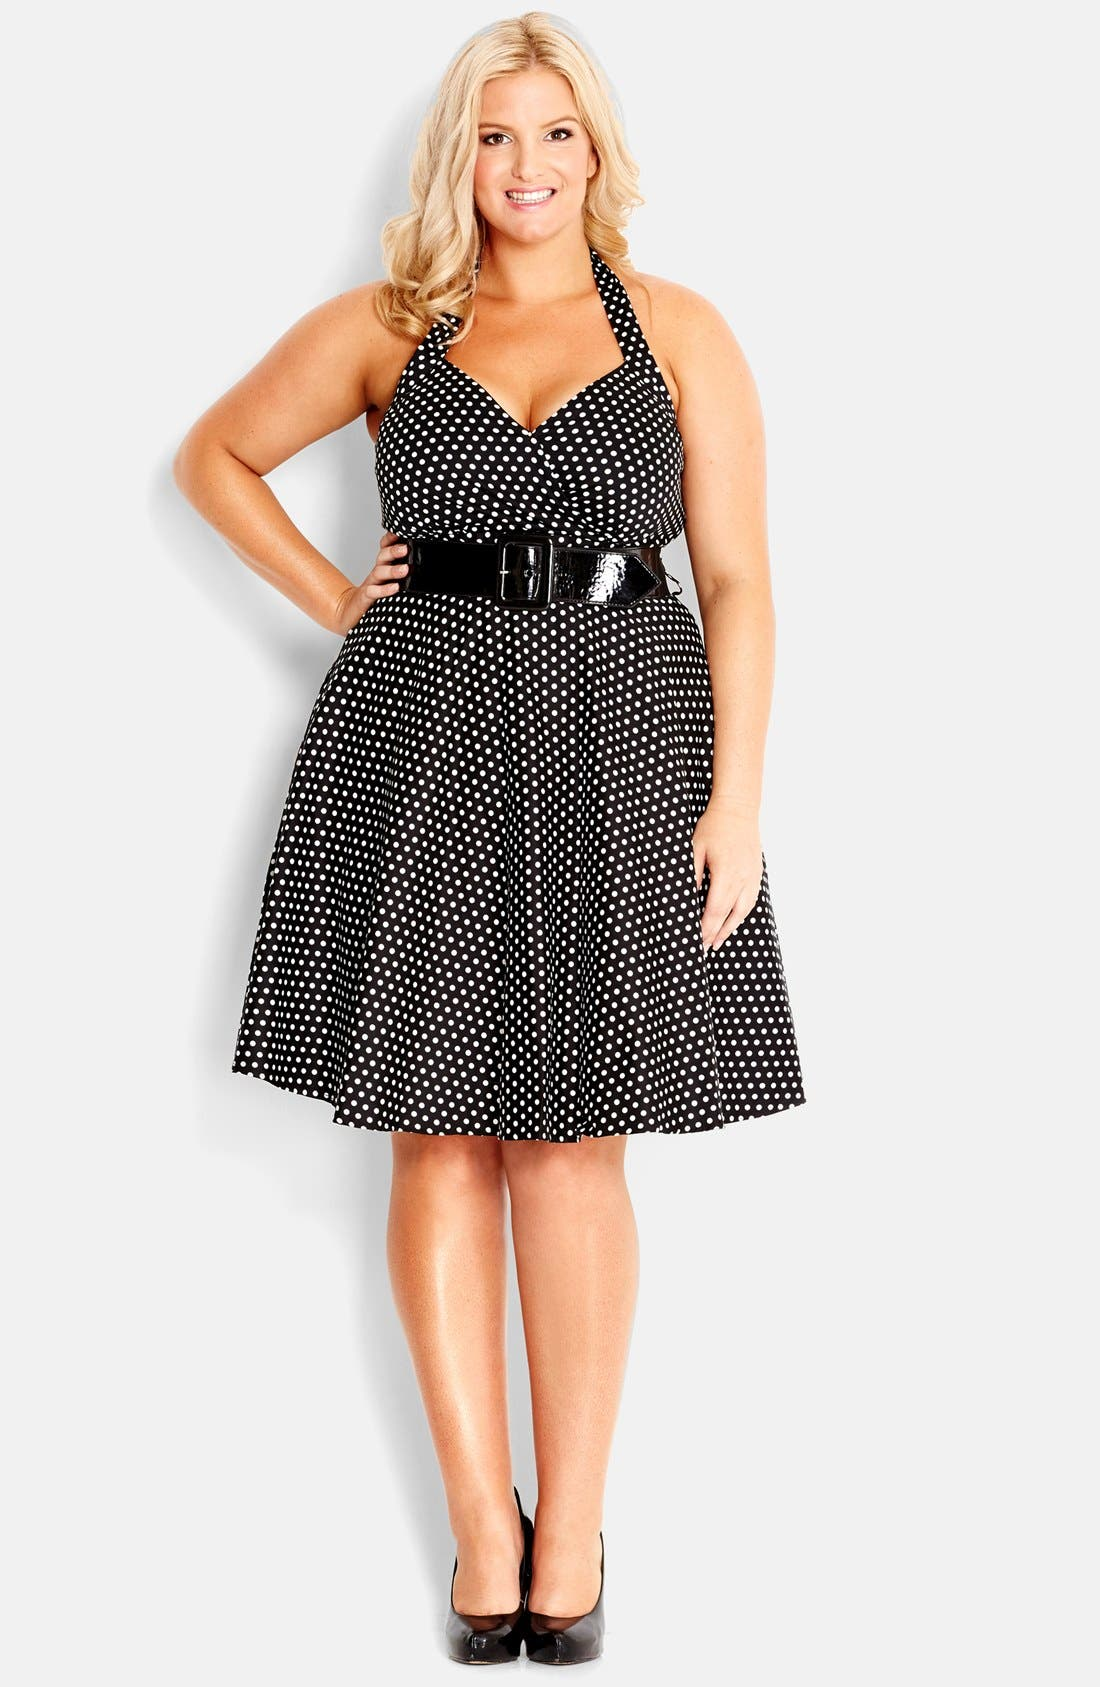 Alternate Image 1 Selected - City Chic 'Spot Siren' Belted Fit & Flare Halter Dress (Plus Size)